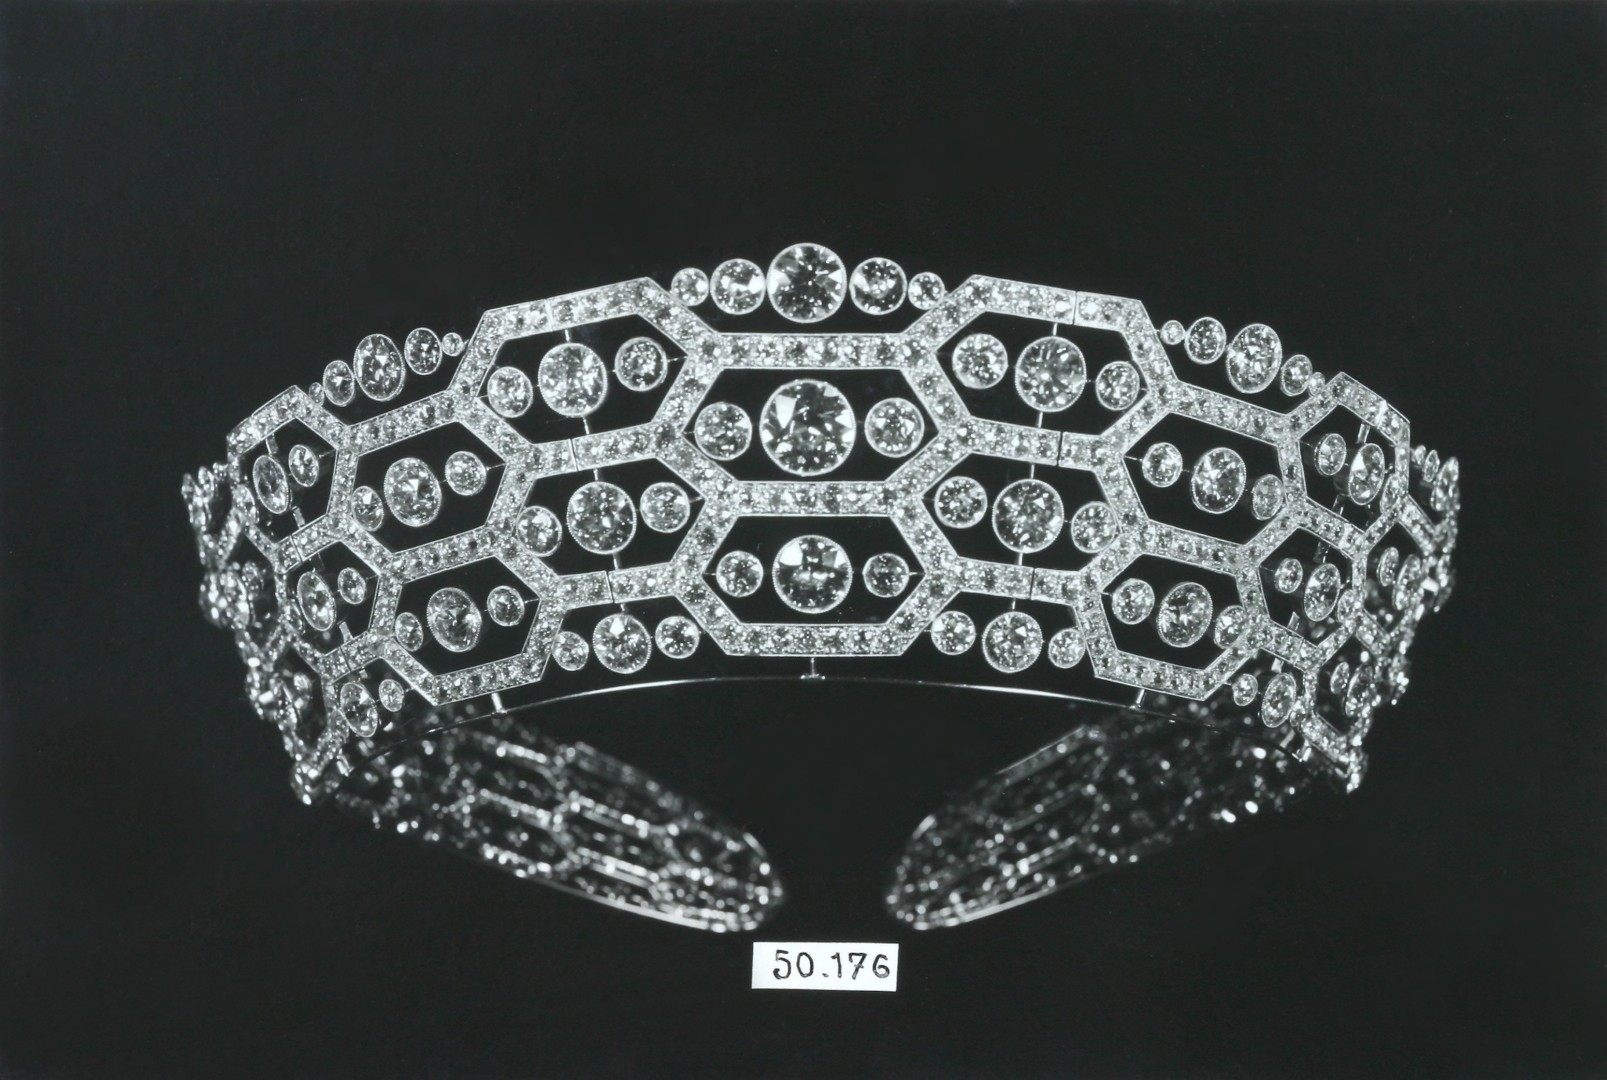 How Coco Chanel saved the diamond industry during the Great